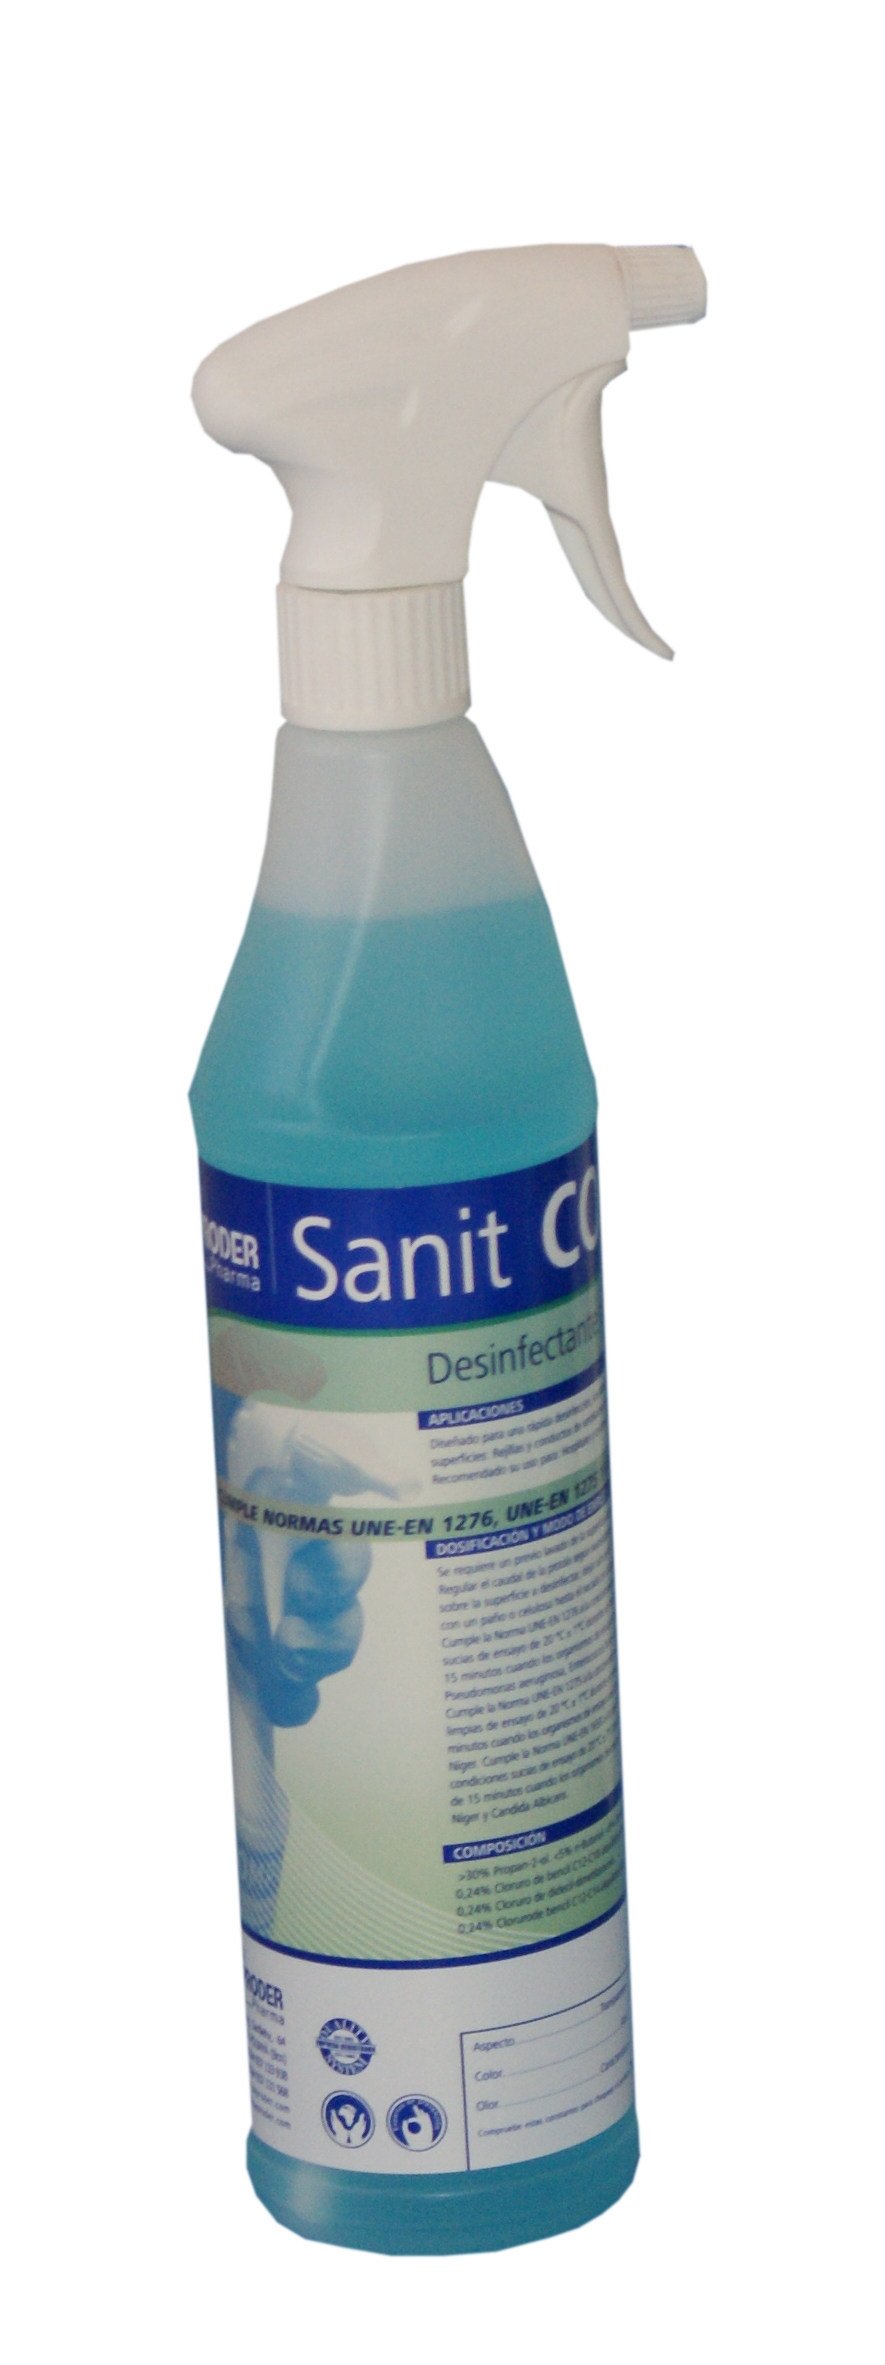 DESINFECTANTE SANIT COMPLET 0.75 L. SPRAY